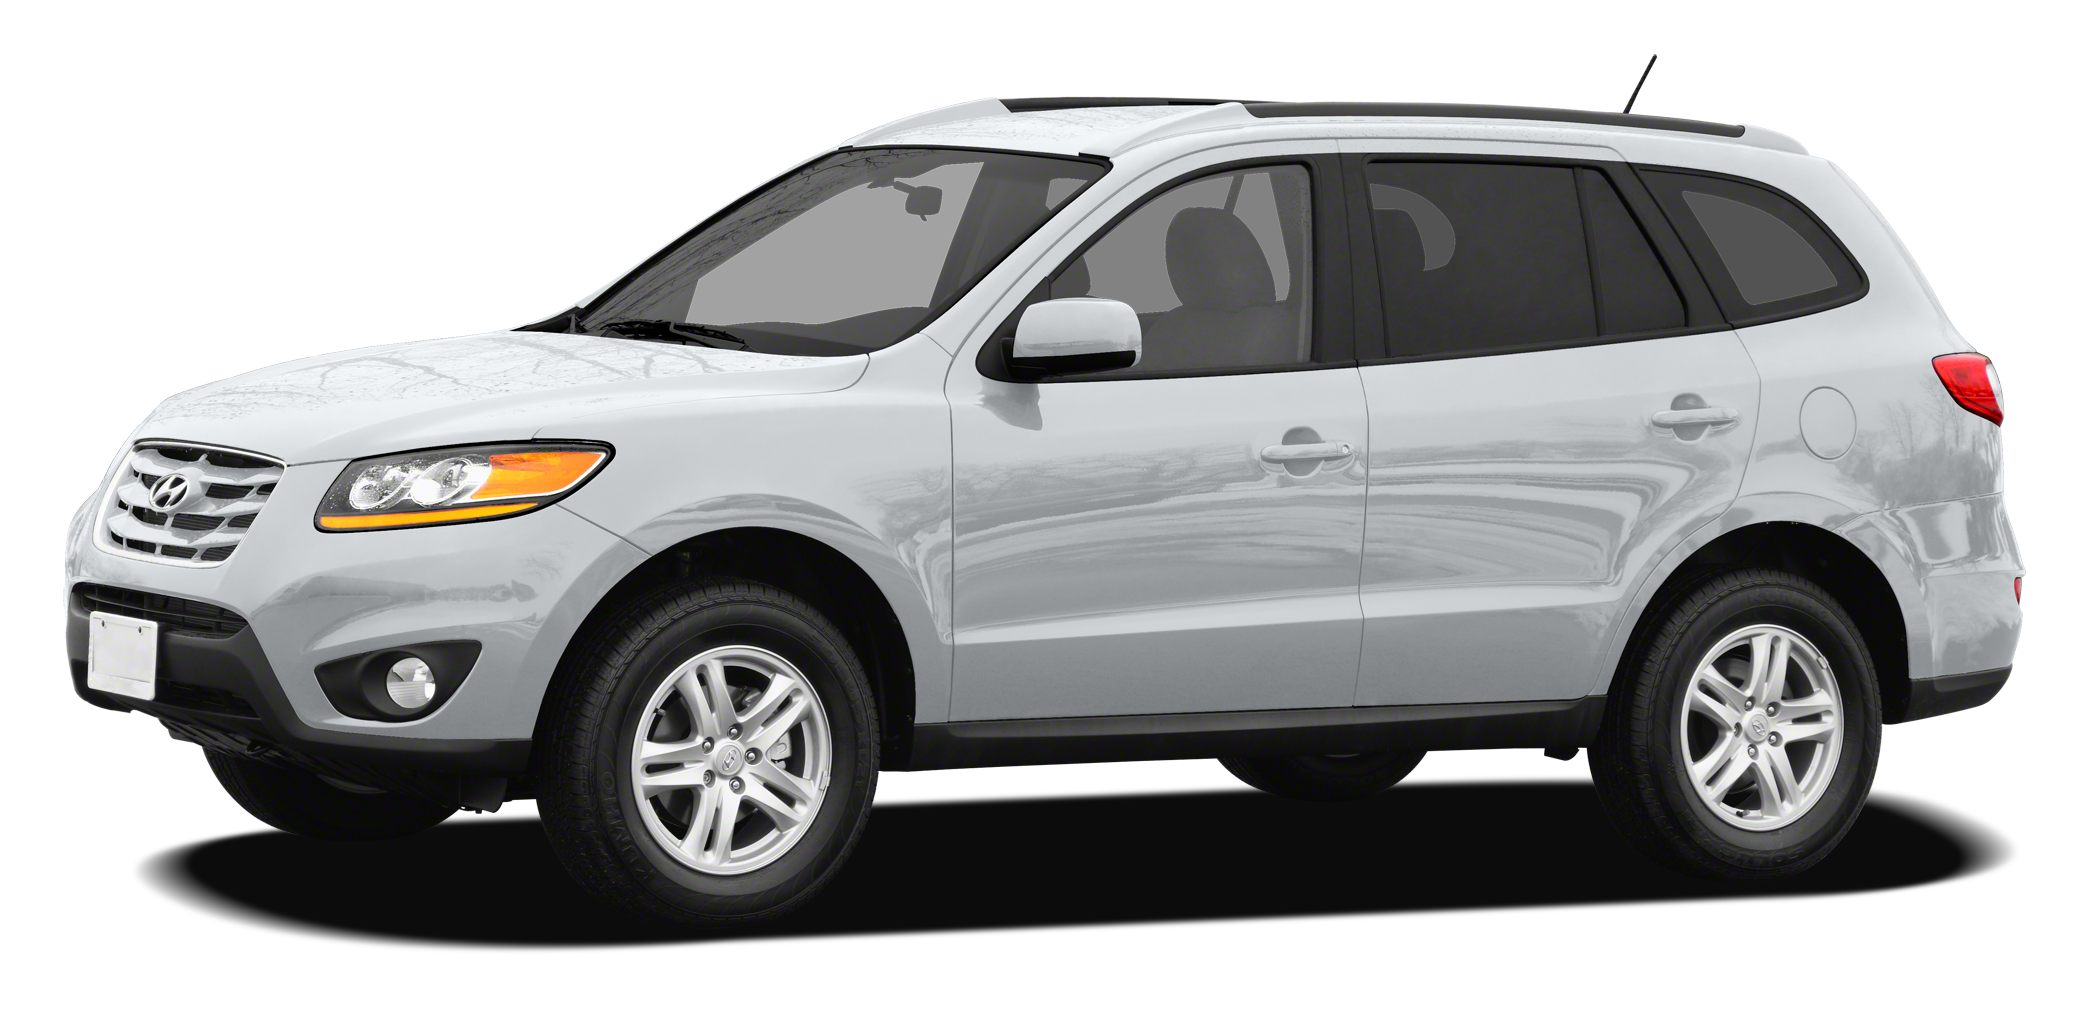 2011 Hyundai Santa Fe GLS Lifetime Engine Warranty at NO CHARGE on all pre-owned vehicles Courtesy